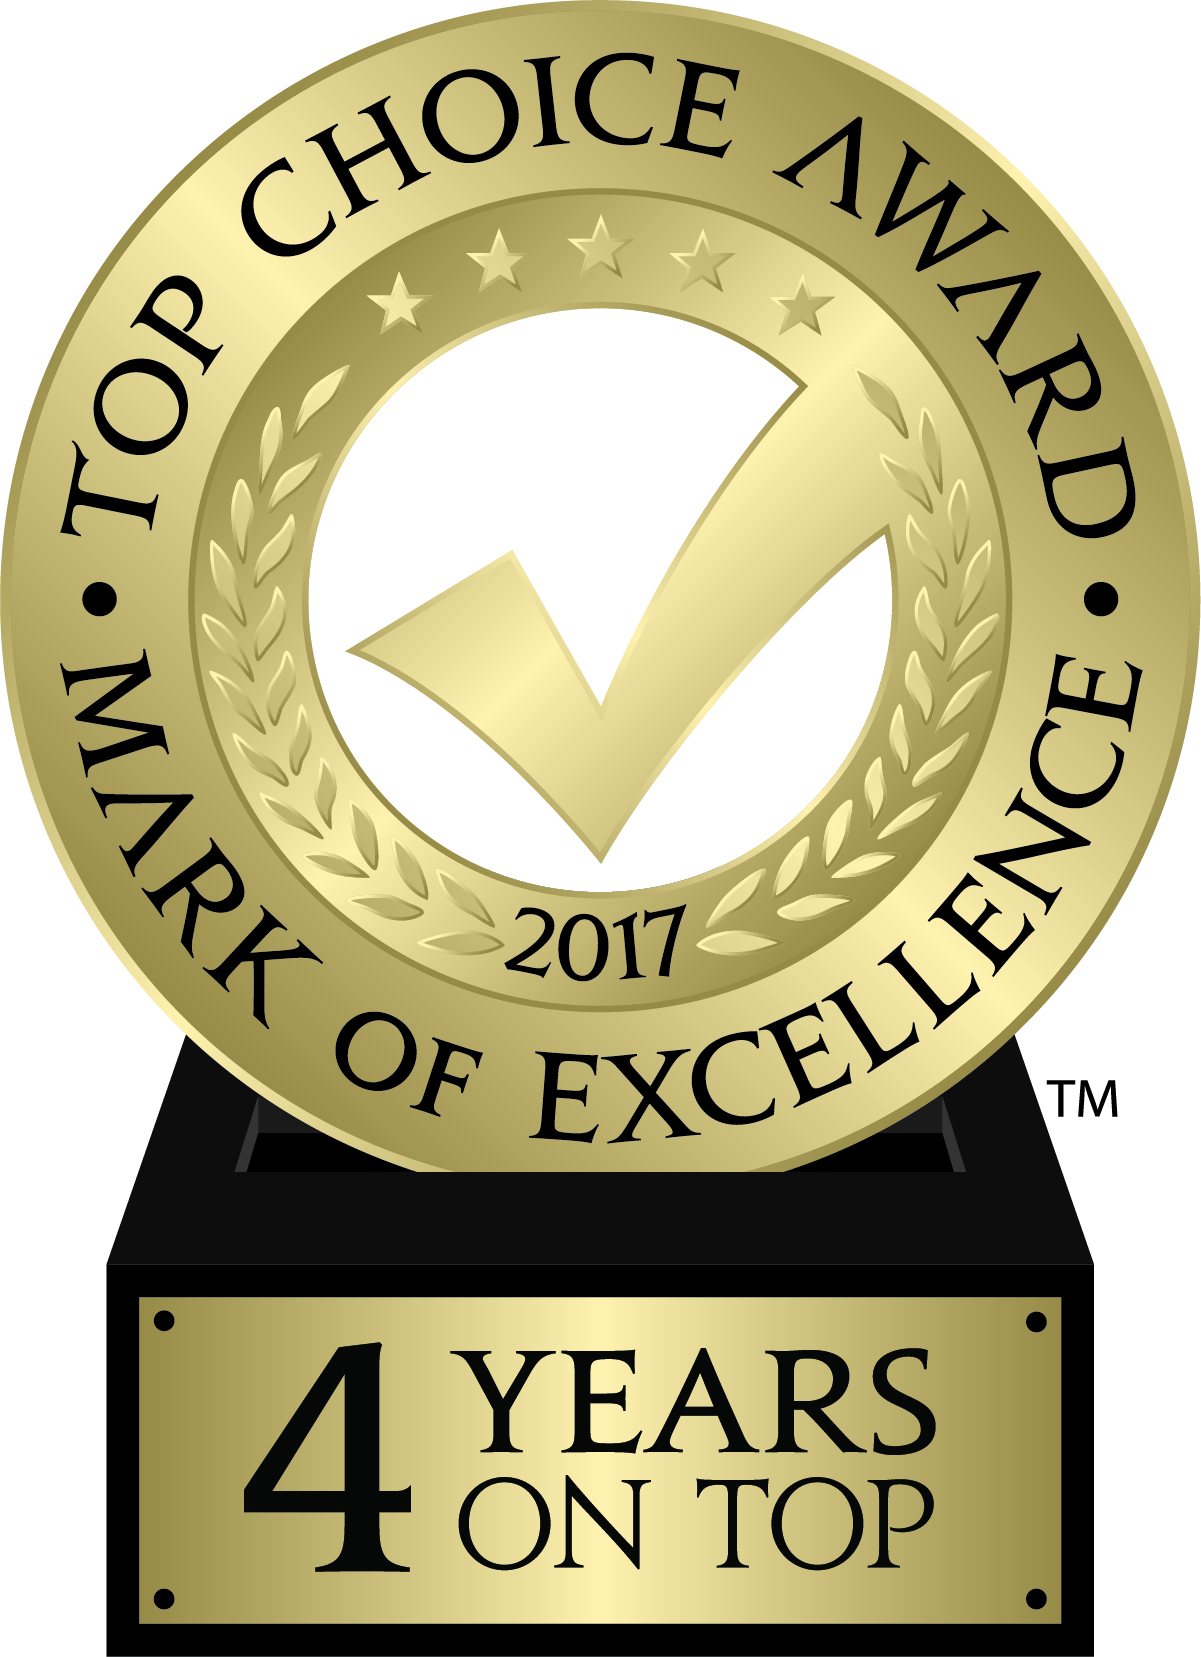 TopChoiceAwards_logo_2017_consecutive_4years.jpg